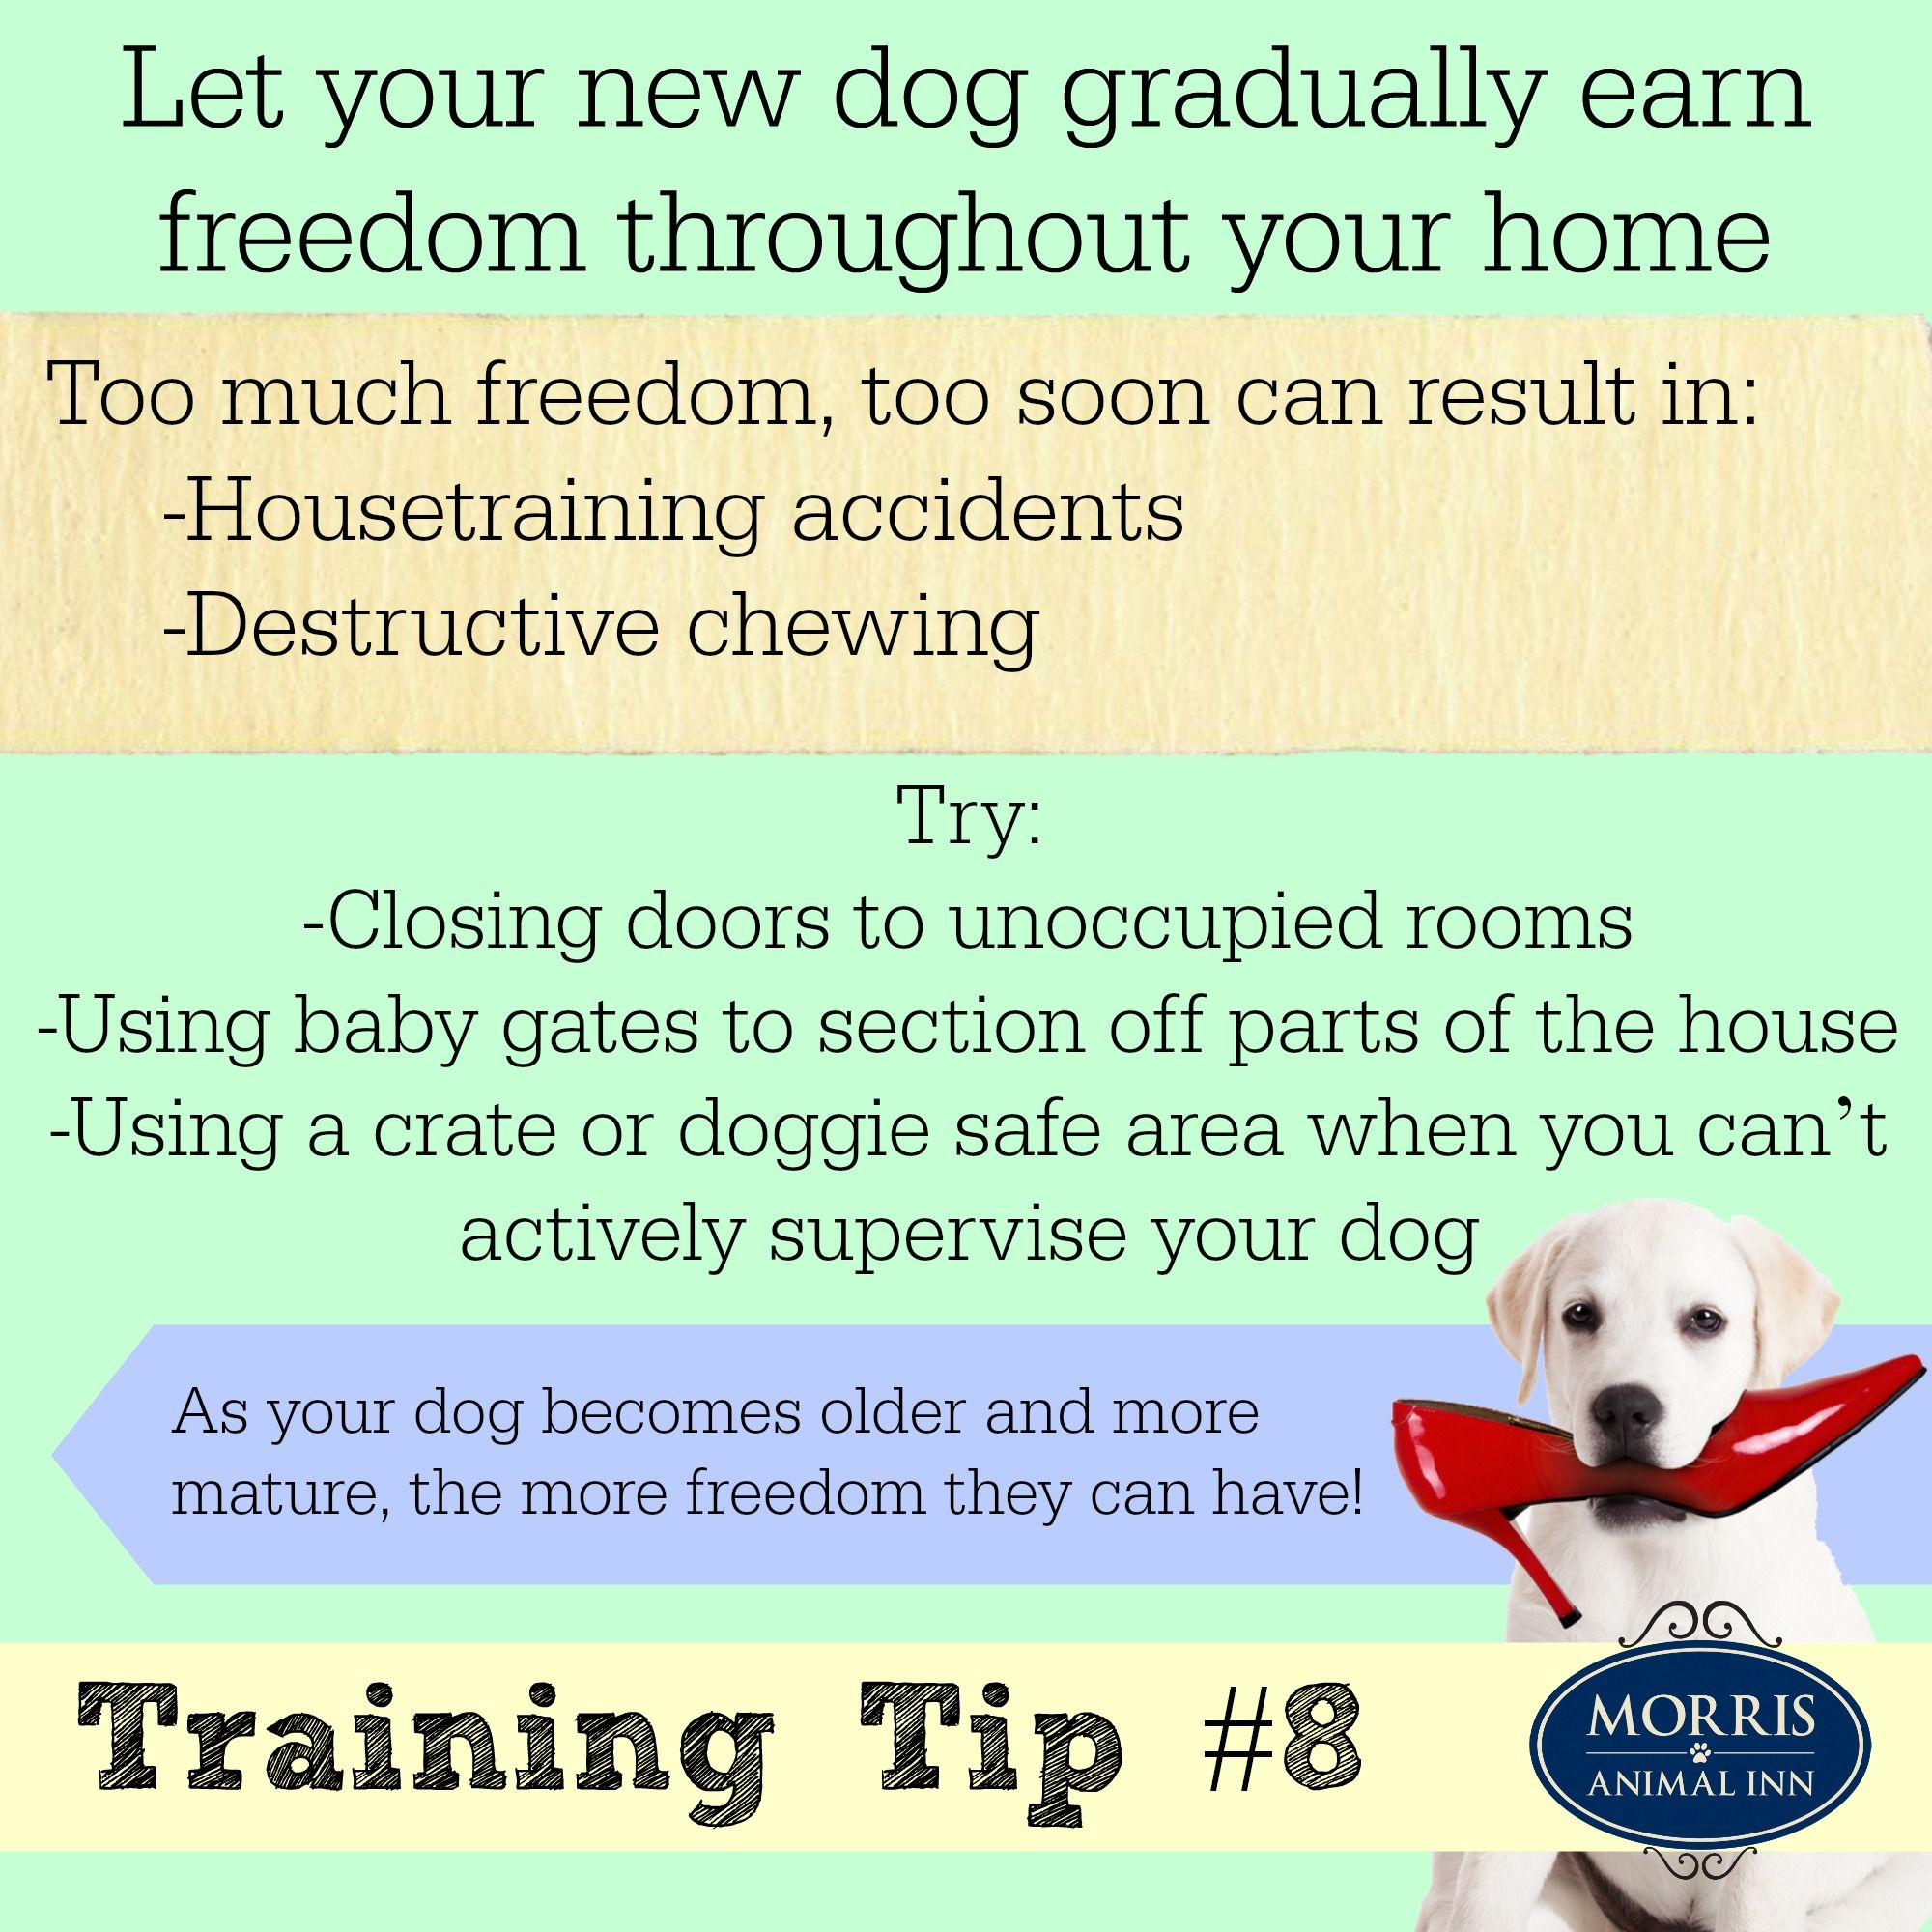 Don T Give Your New Dog Too Much Freedom In Your Home Too Soon Training Dogtraining Newdog Puppy Dog Training Tips House Training Dog Training